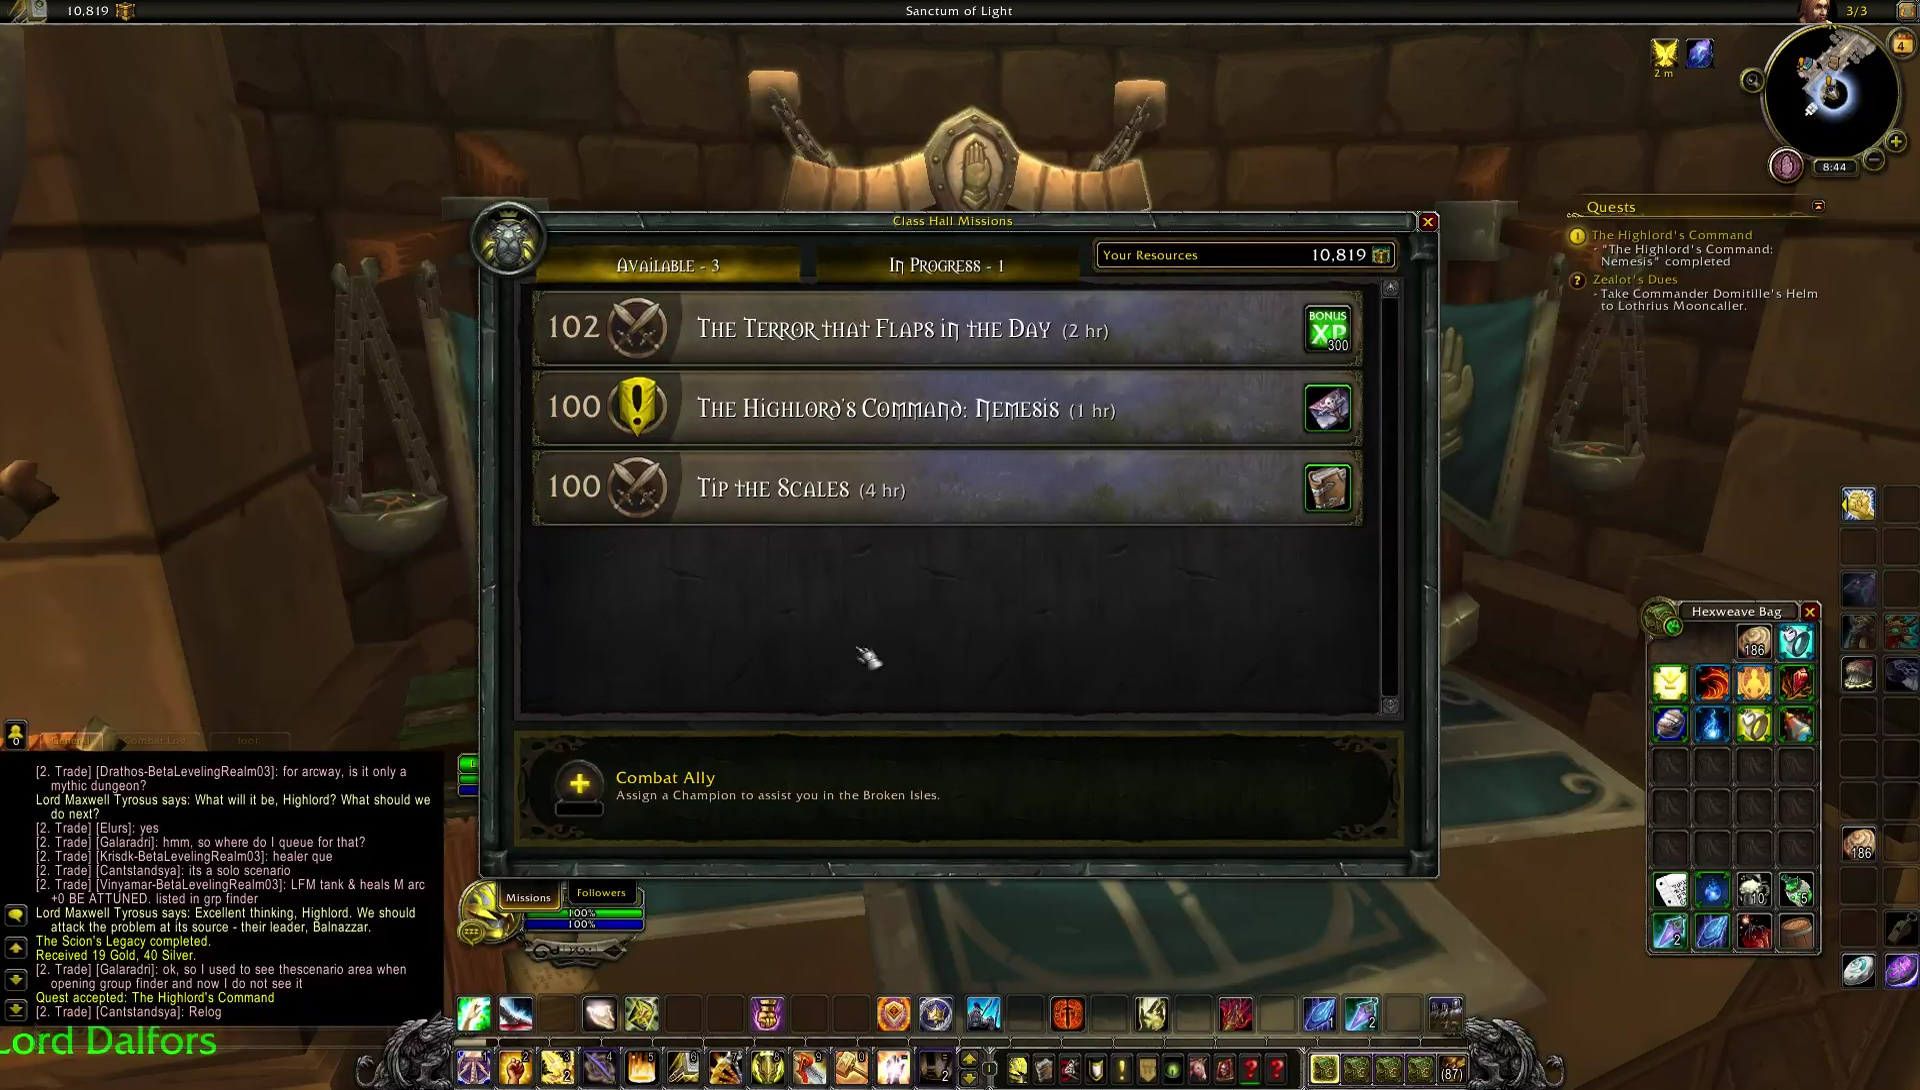 world-of-warcraft-legion-turalyon-questline-00070